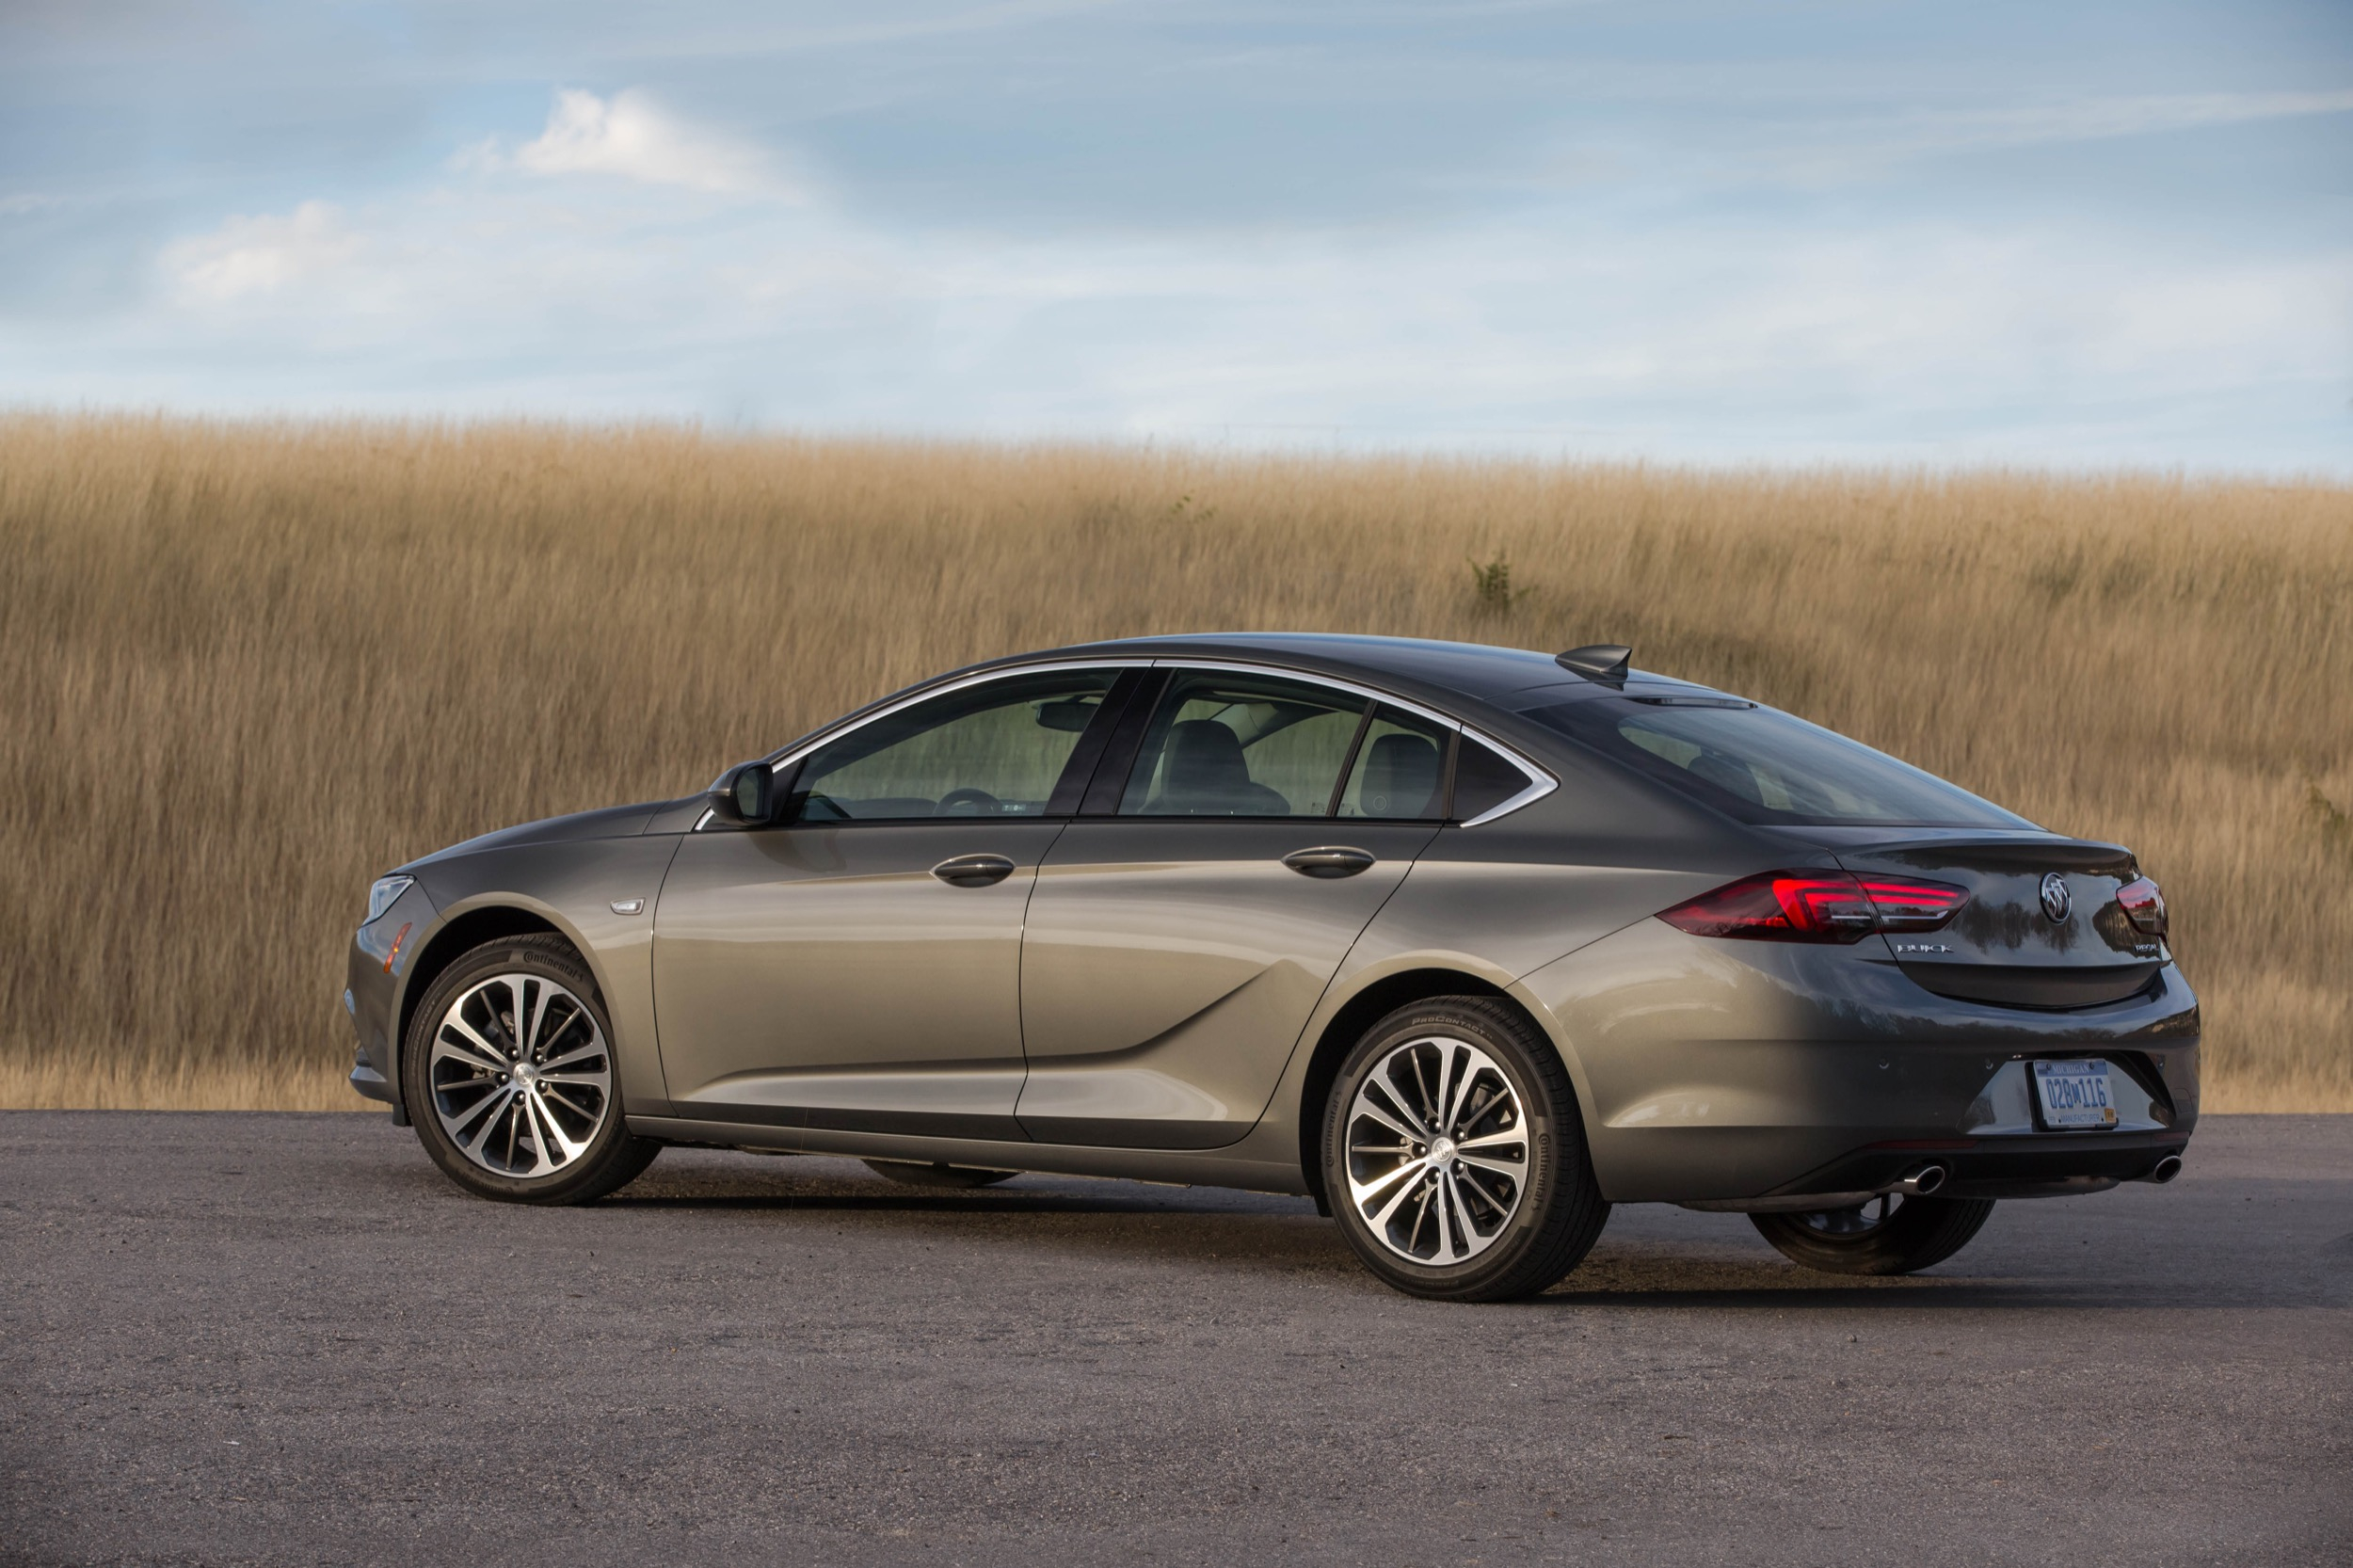 Buick Regal Tops J.d. Power Vehicle Dependability Study | Gm Is The 2022 Buick Regal A Good Car